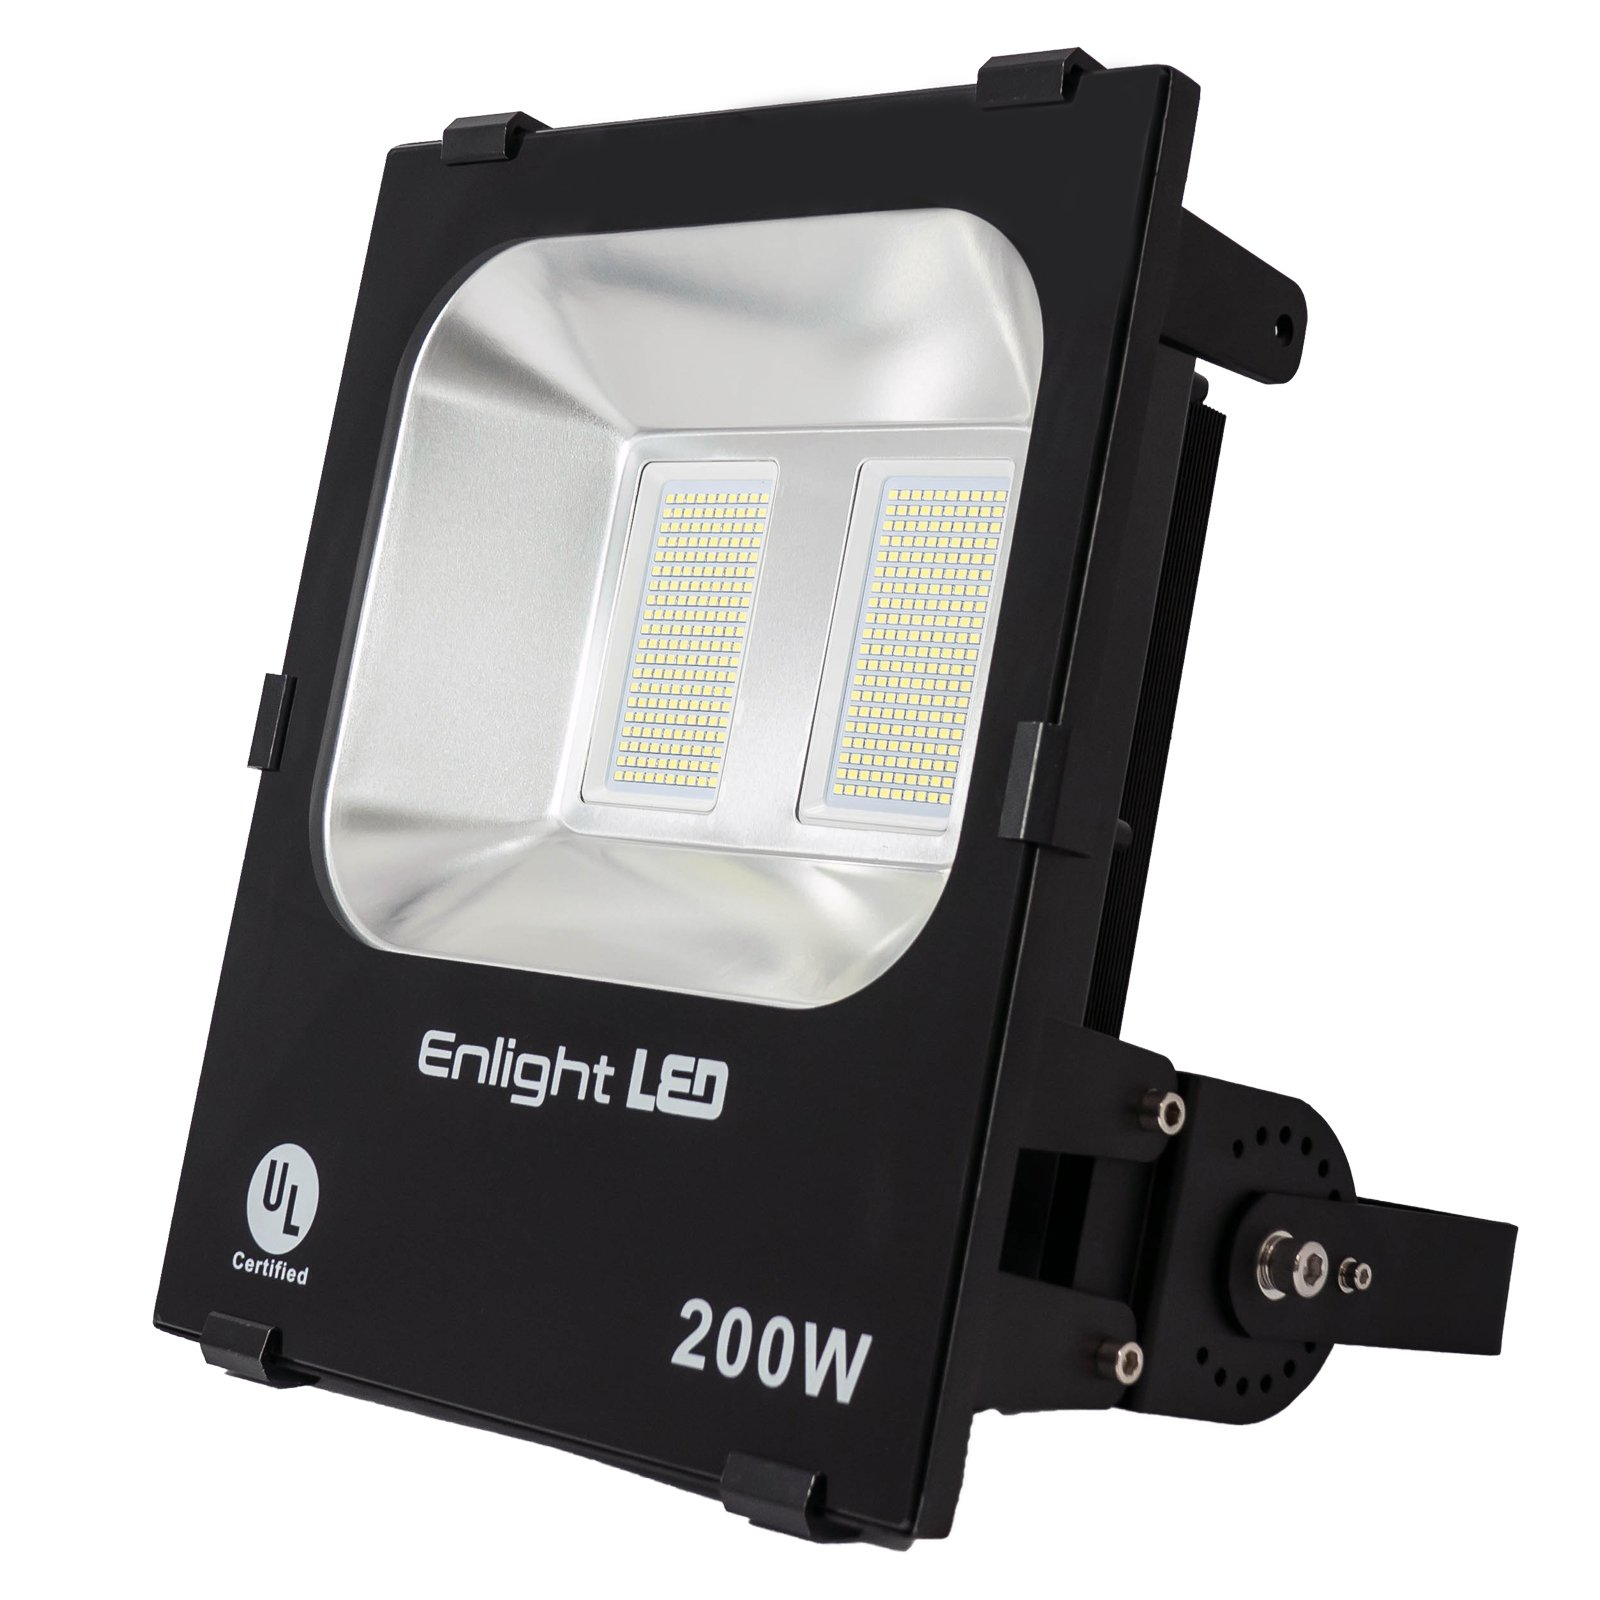 Enlight LED LD-FD-K200U UL Certified 200W LED Flood Light 120 Degree Light Angle 20,000 lm, Cool White, Heavy Duty Aluminum by Enlight LED